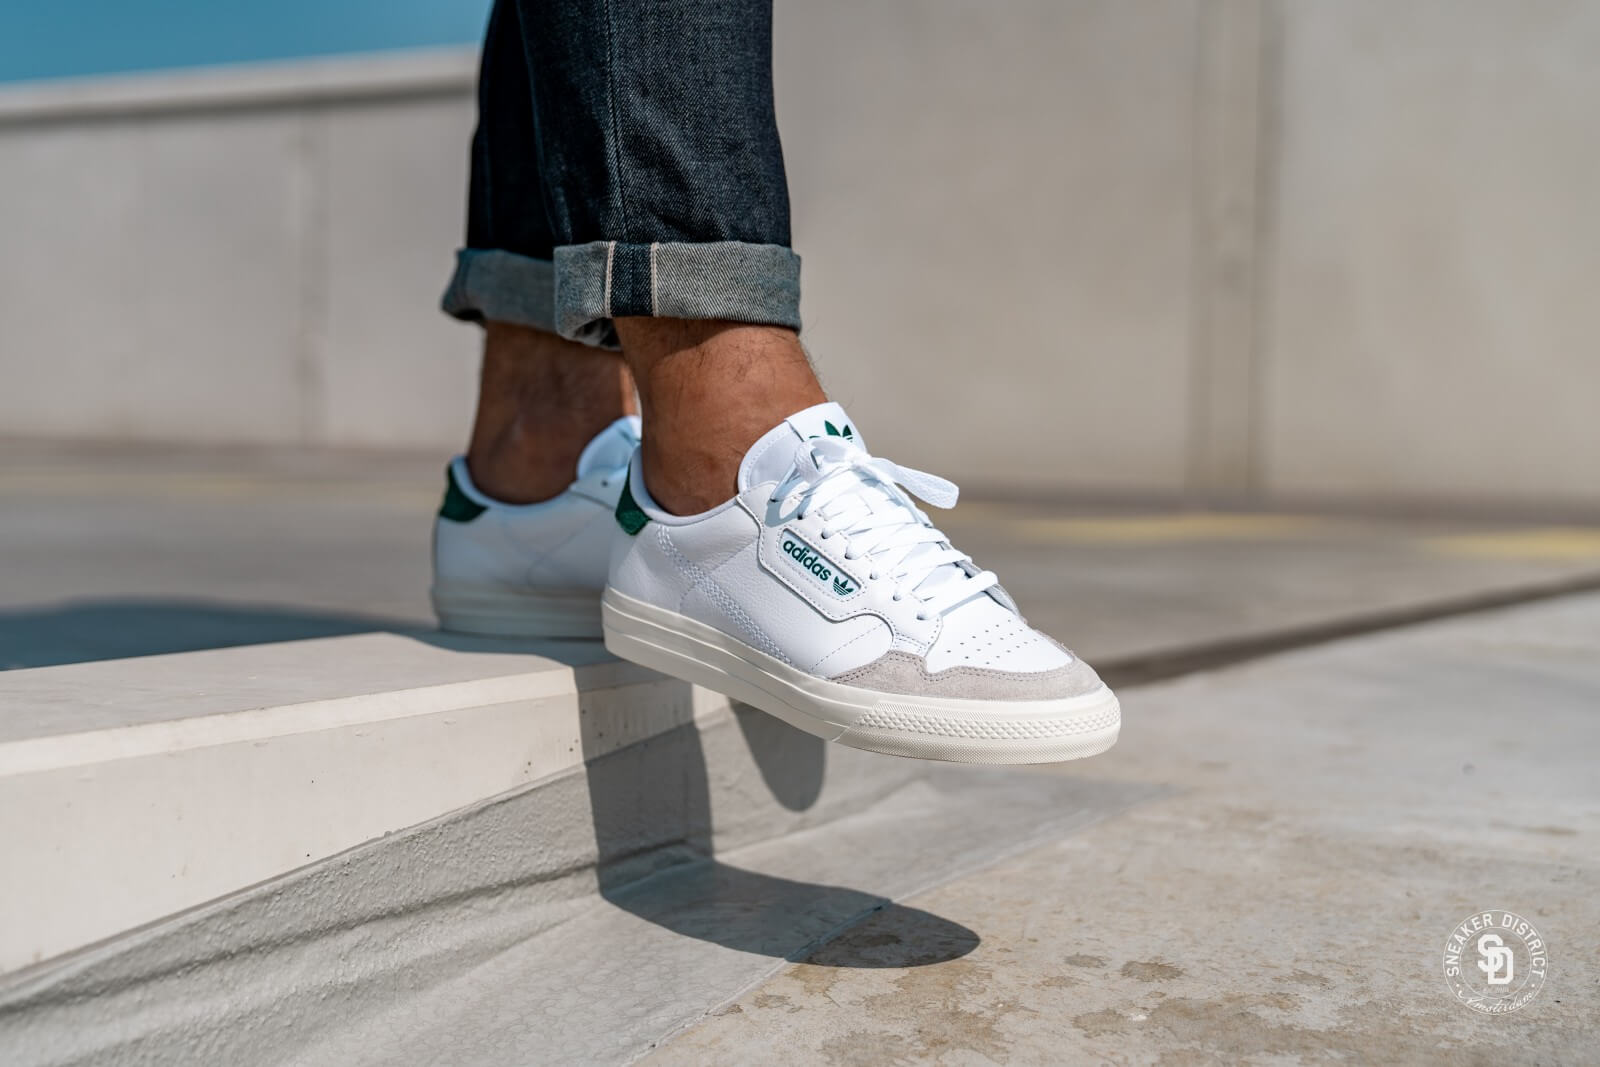 Adidas Continental Vulc Cloud White/Collegiate Green - EF3534